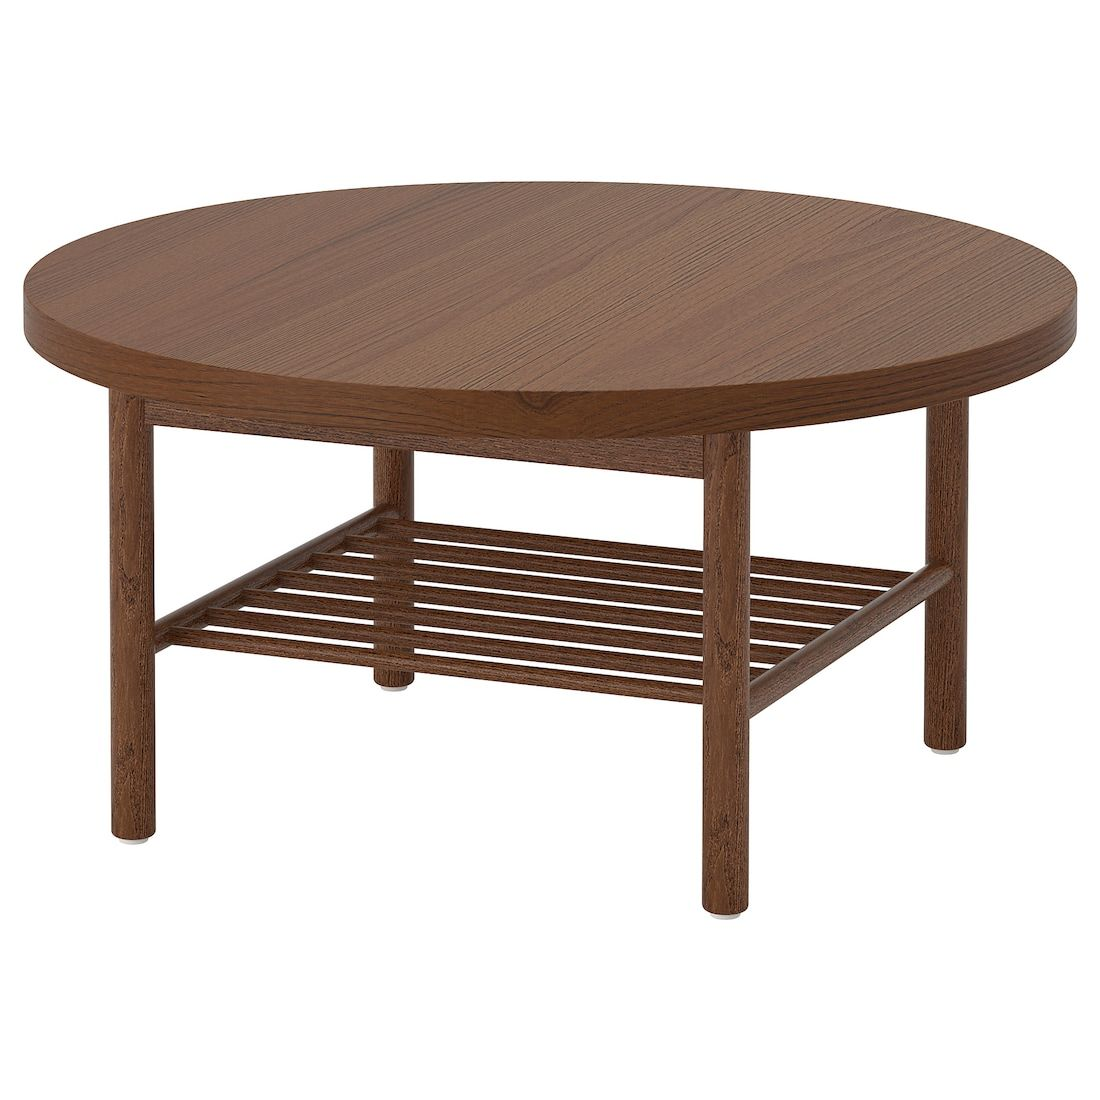 Listerby Coffee Table Brown 35 3 8 Ikea Coffee Table Brown Coffee Table Coffee Table White [ 1100 x 1100 Pixel ]